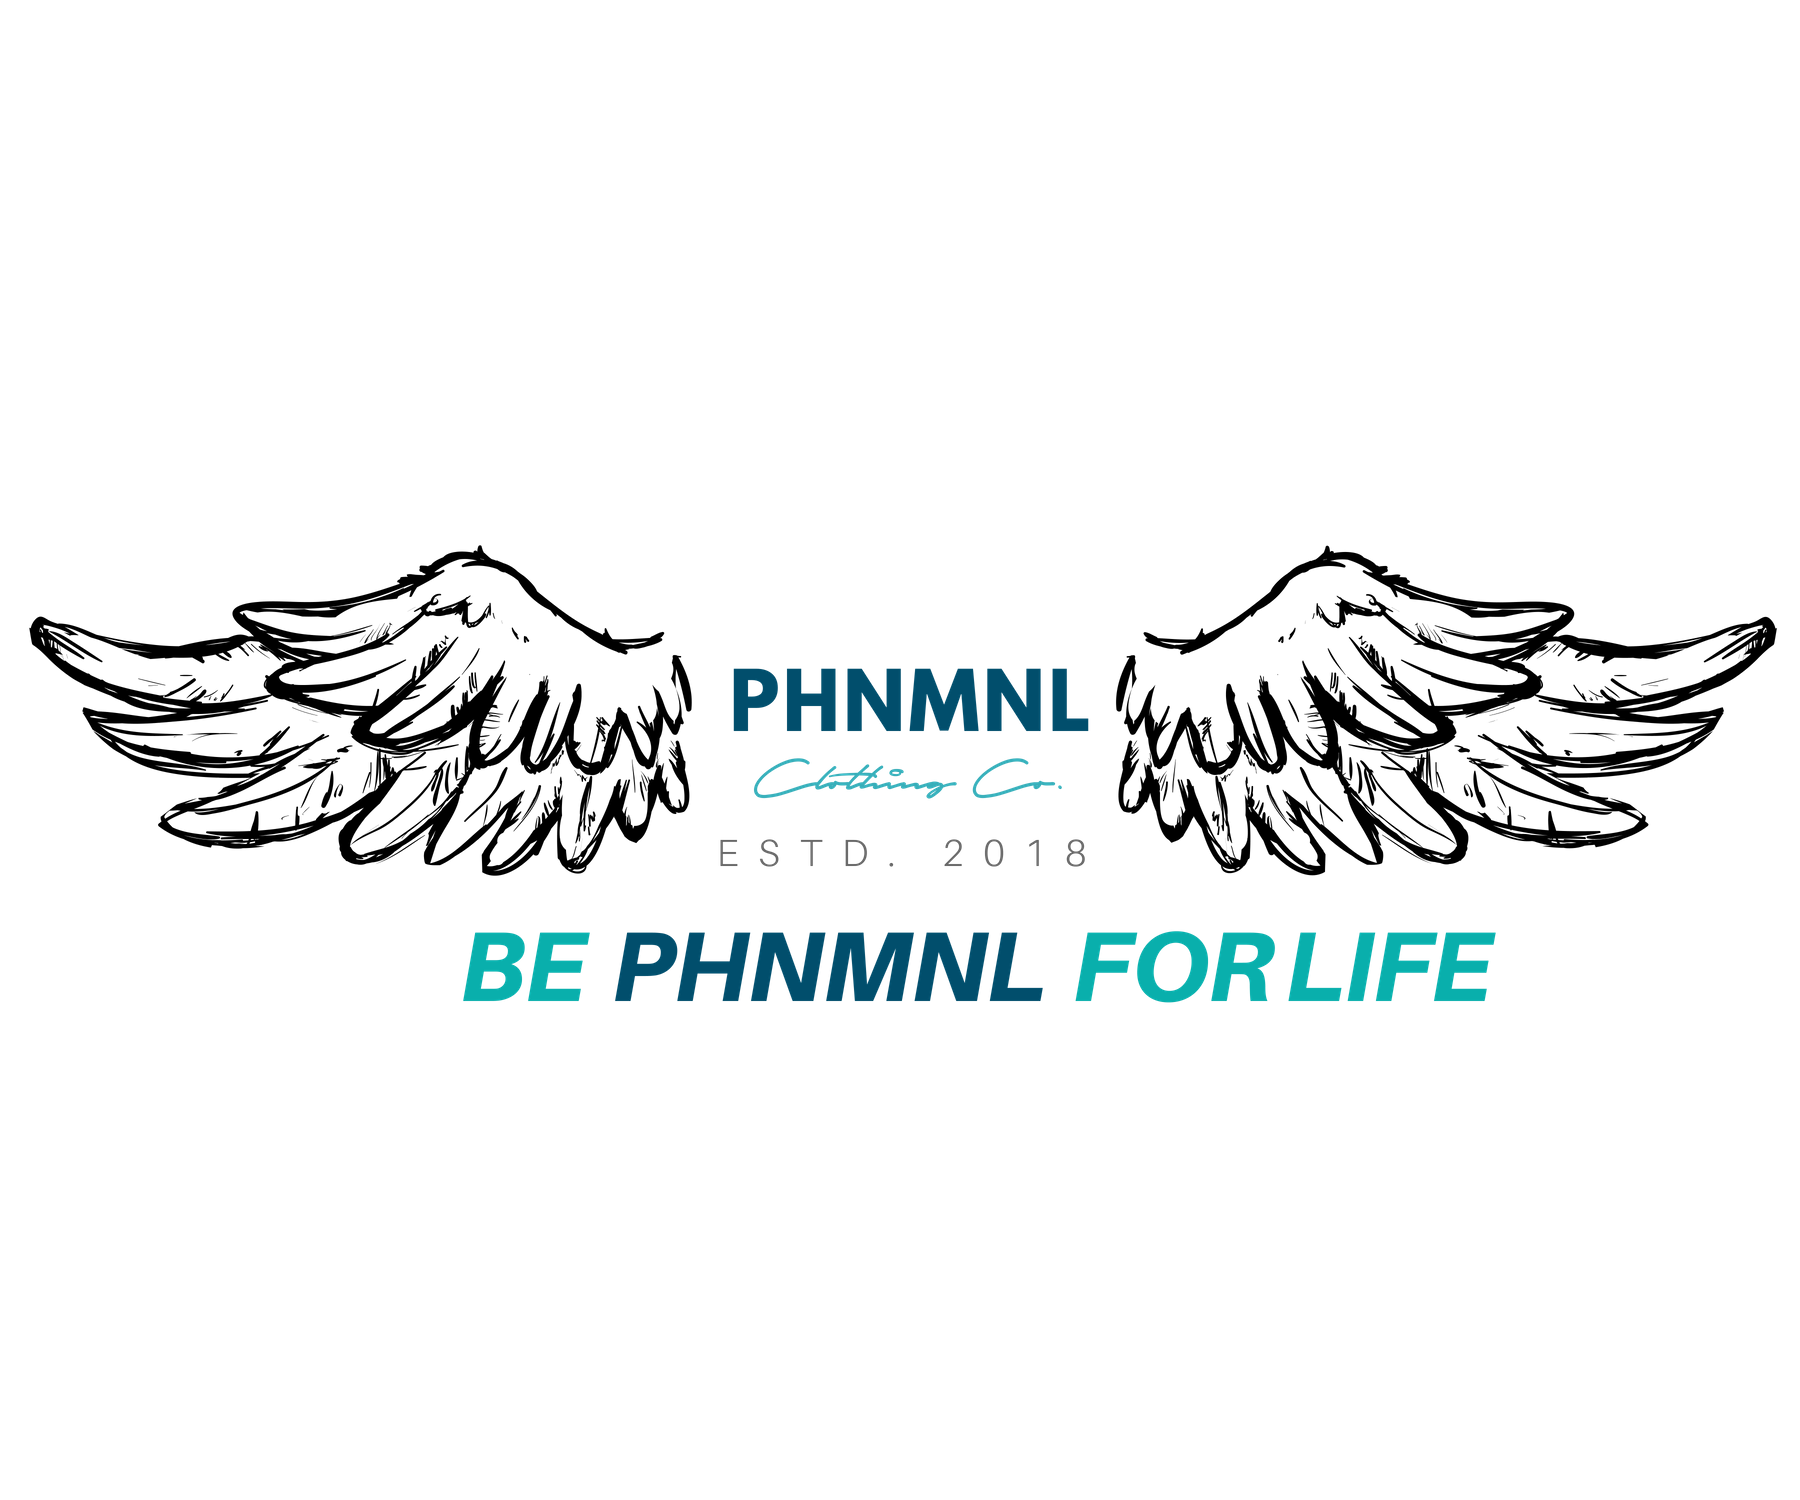 PHNMNL,phenomenal,clothing